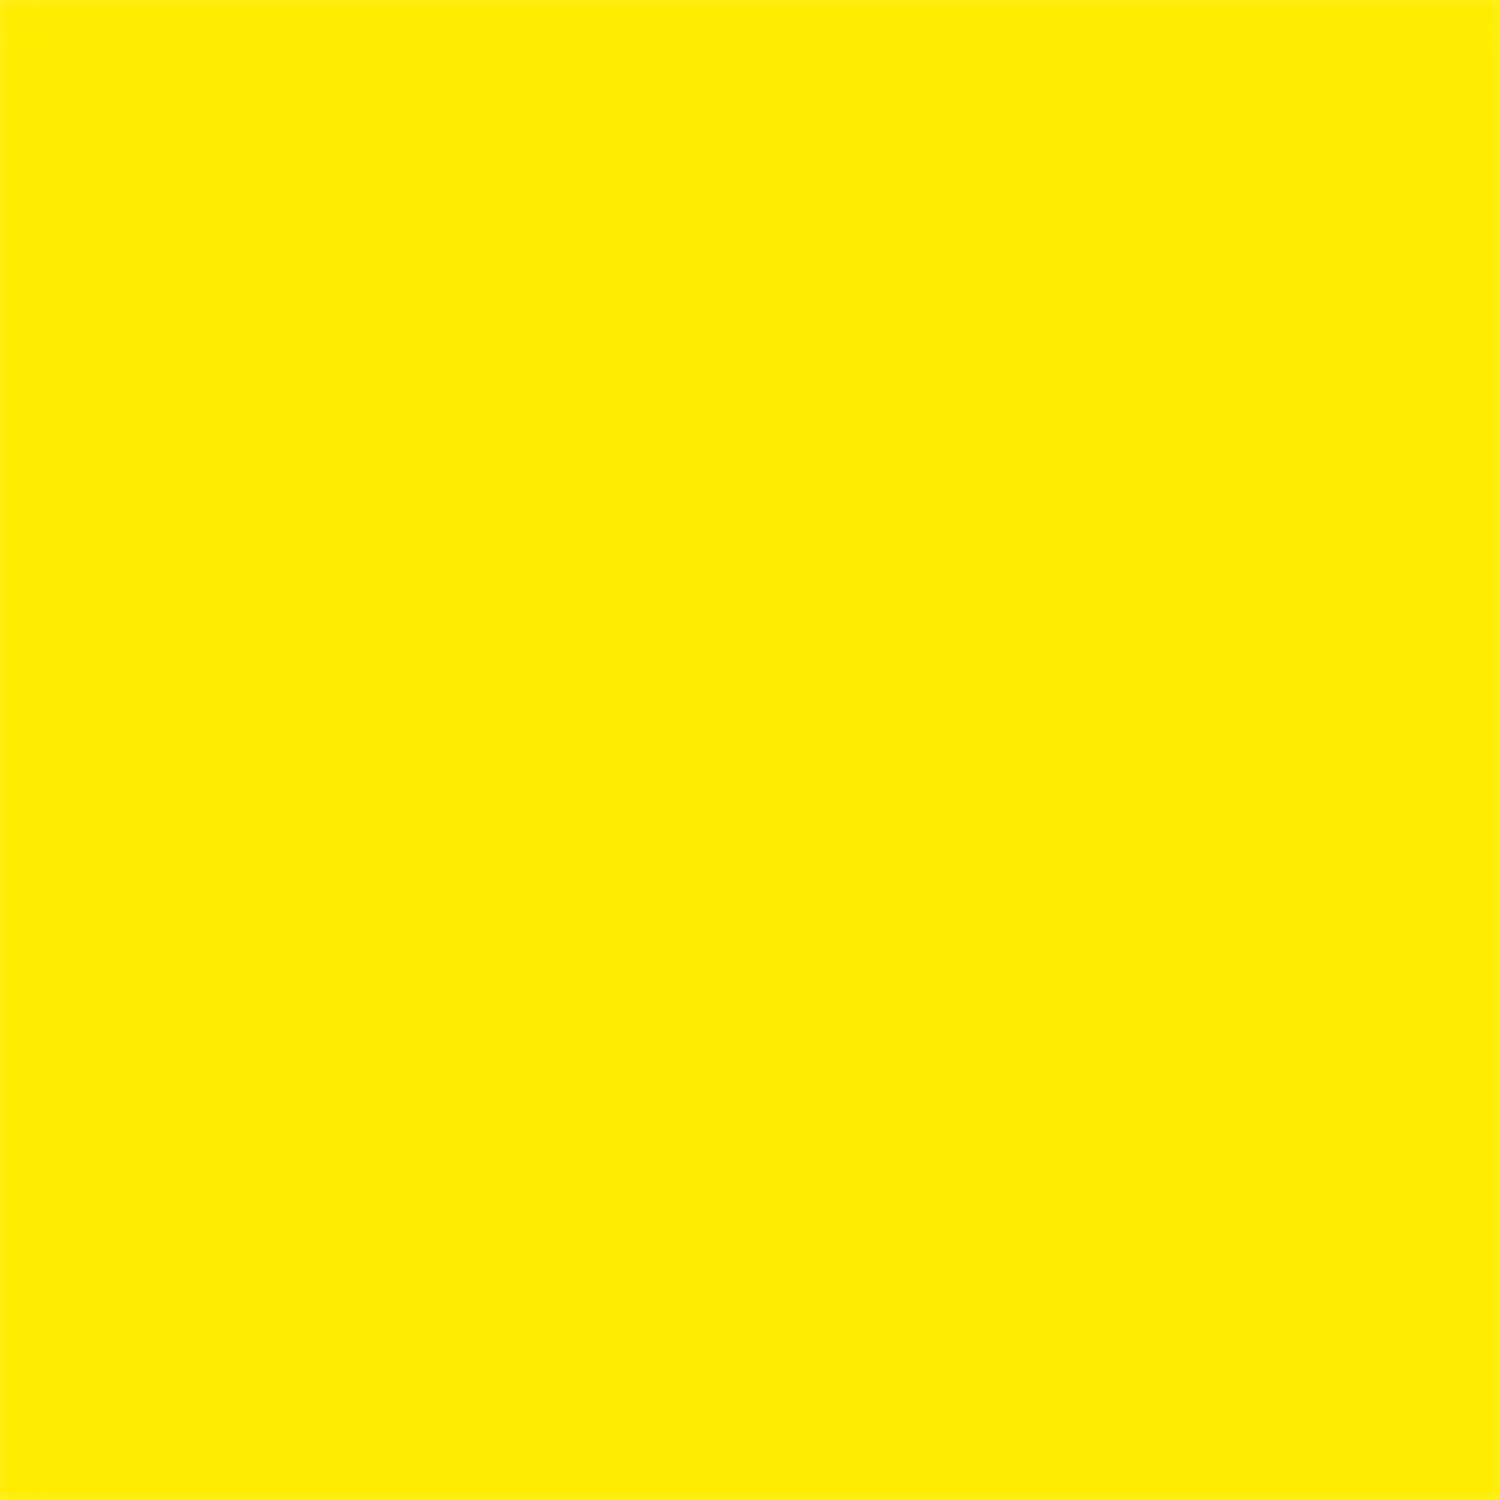 Powder-coated, sulfur yellow